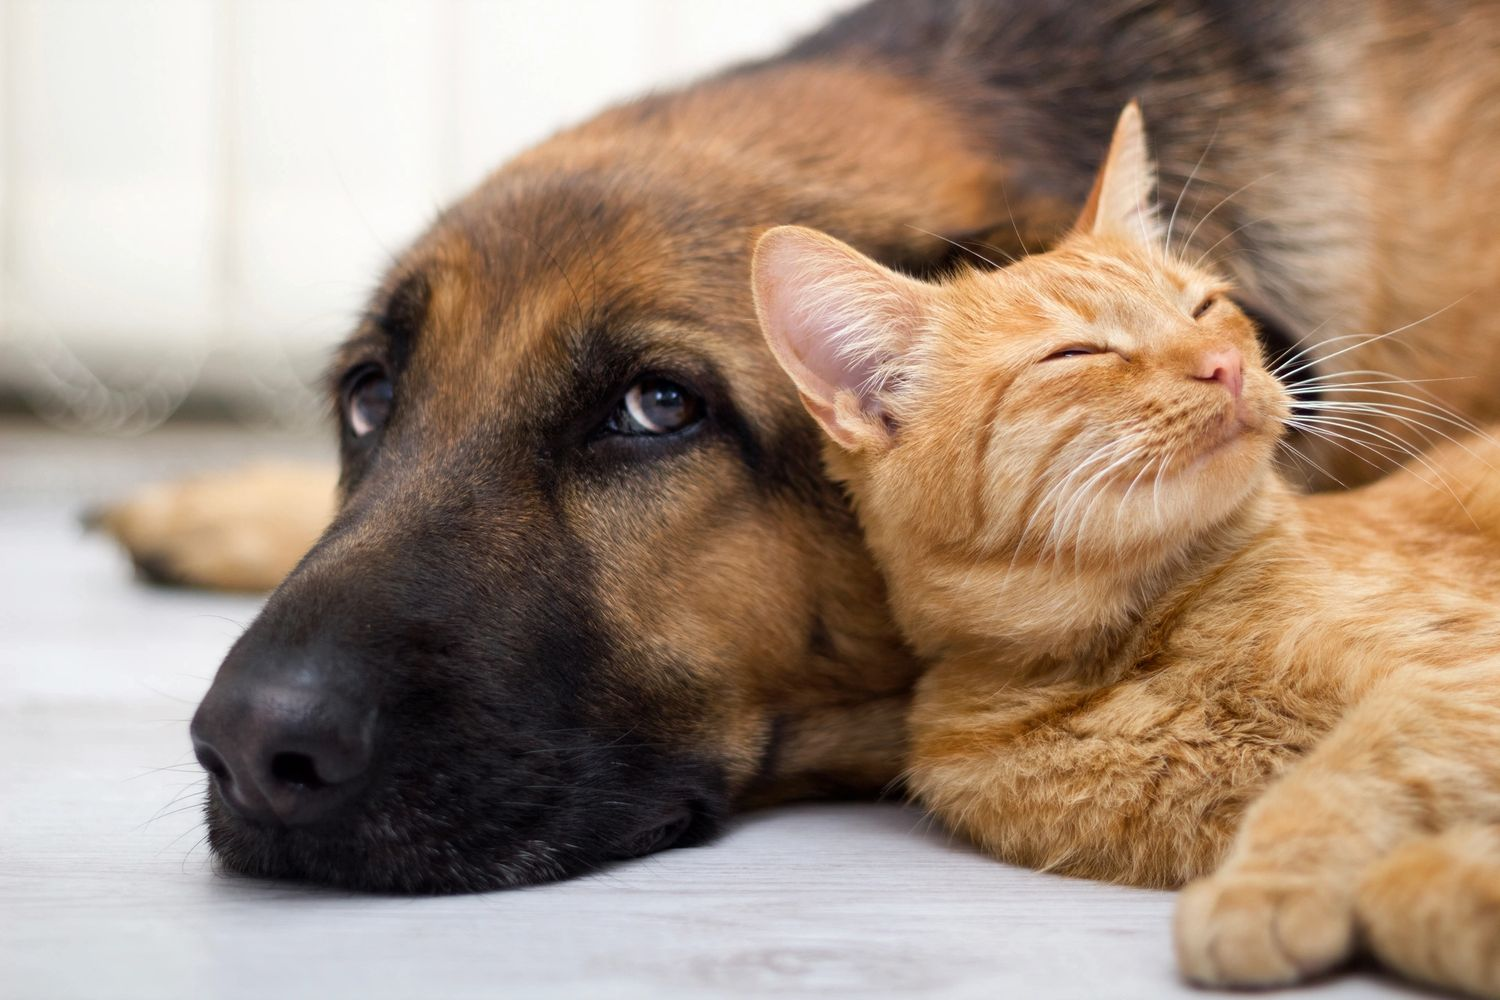 Black and tan shepherd dog and orange short haired tabby cat